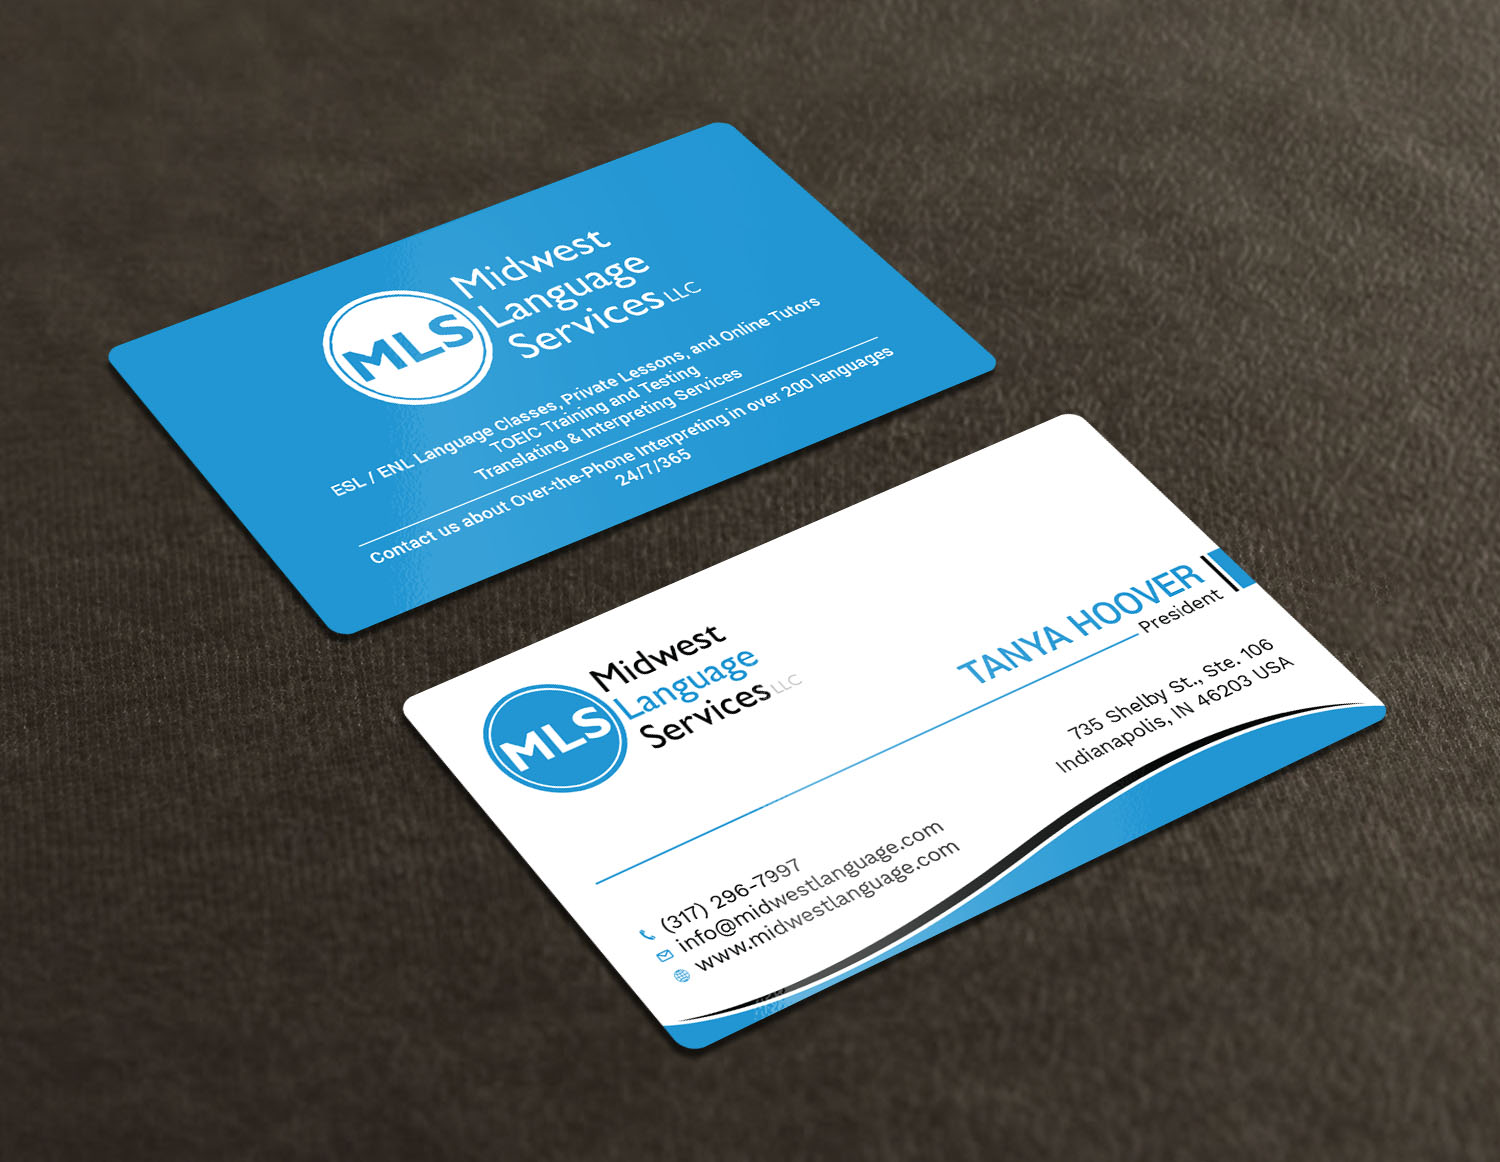 Serious modern business business card design for midwest language business card design by avanger000 for midwest language services llc design 17735718 reheart Choice Image